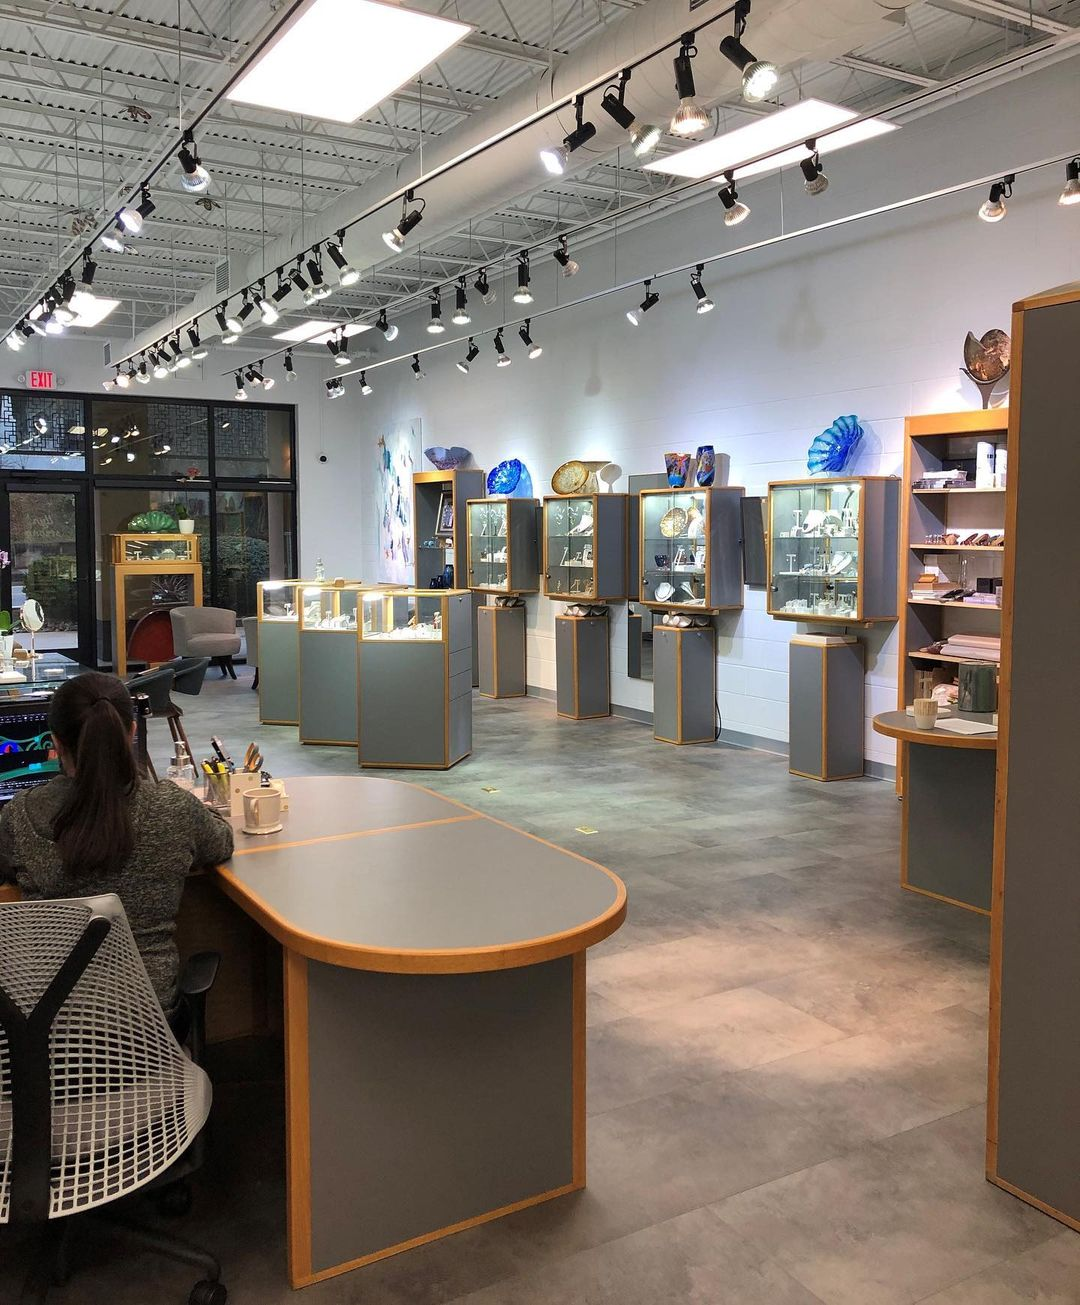 llyn strong fine art jewelry's new location | Photo by @llynstrong